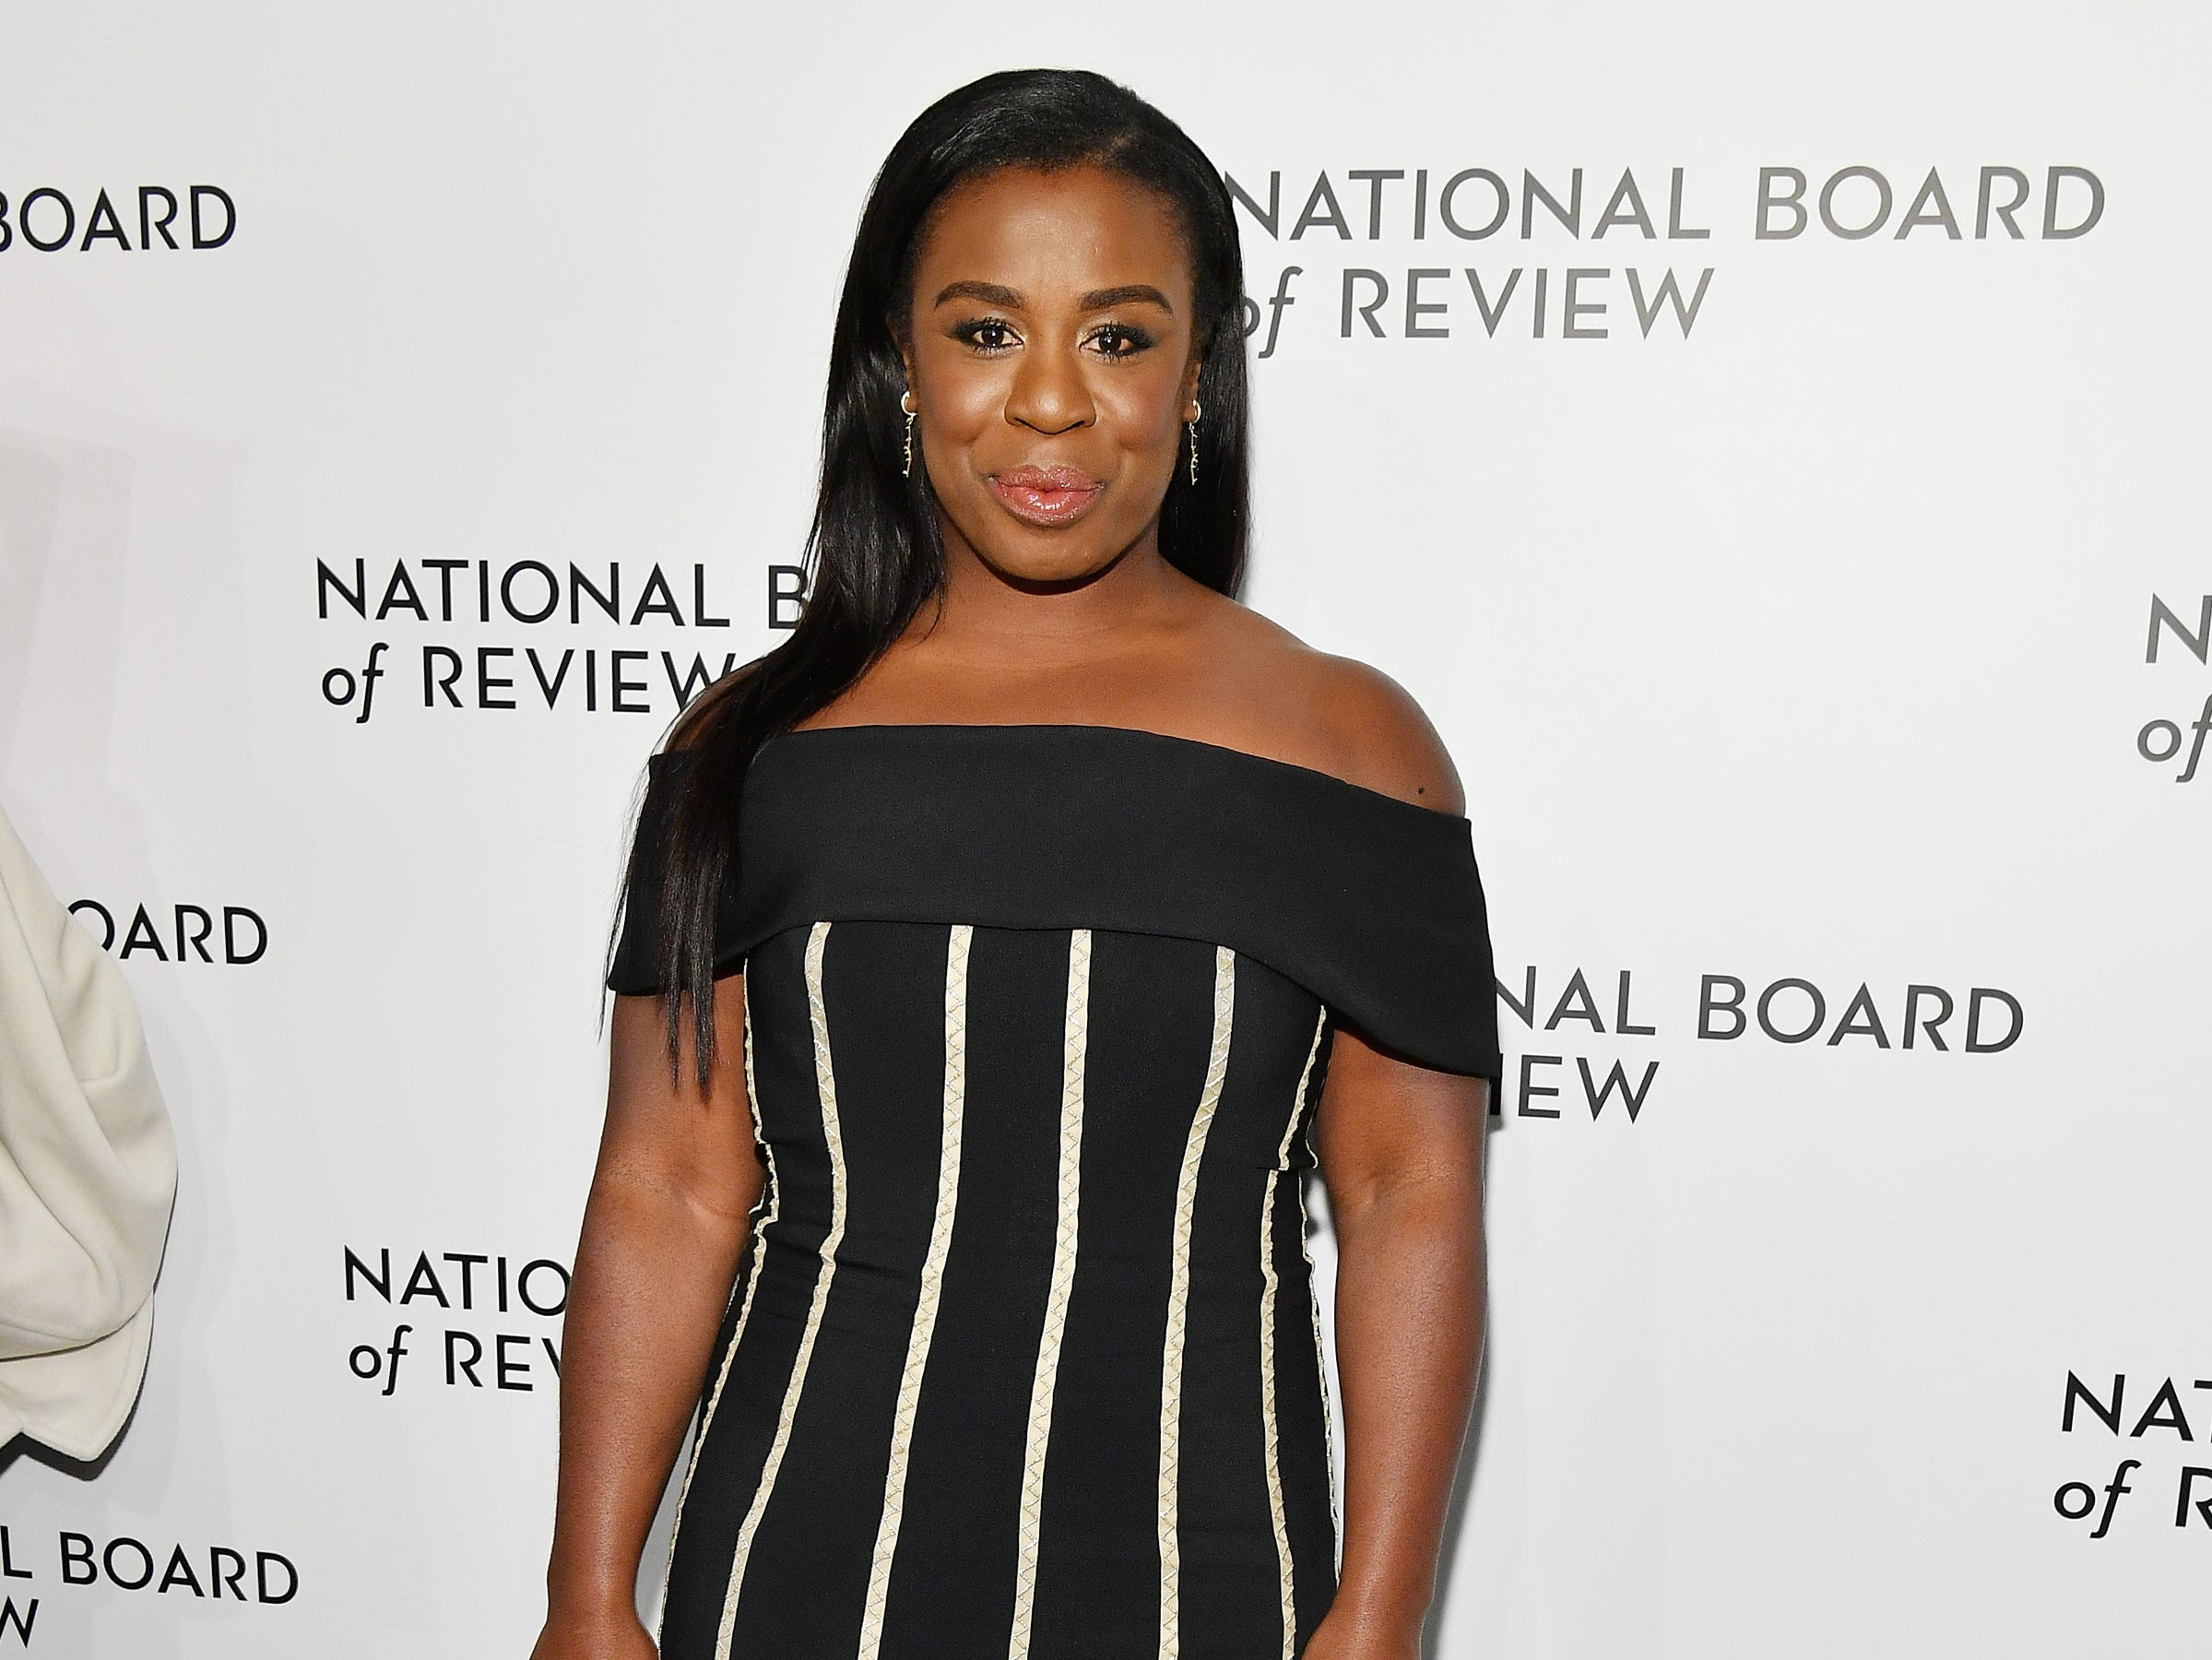 NEW YORK, NY - JANUARY 08: Uzo Aduba attends The National Board of Review Annual Awards Gala at Cipriani 42nd Street on January 8, 2019 in New York City.  (Photo by Dia Dipasupil/Getty Images for National Board of Review) ORG XMIT: 775259363 ORIG FILE ID: 1079453176